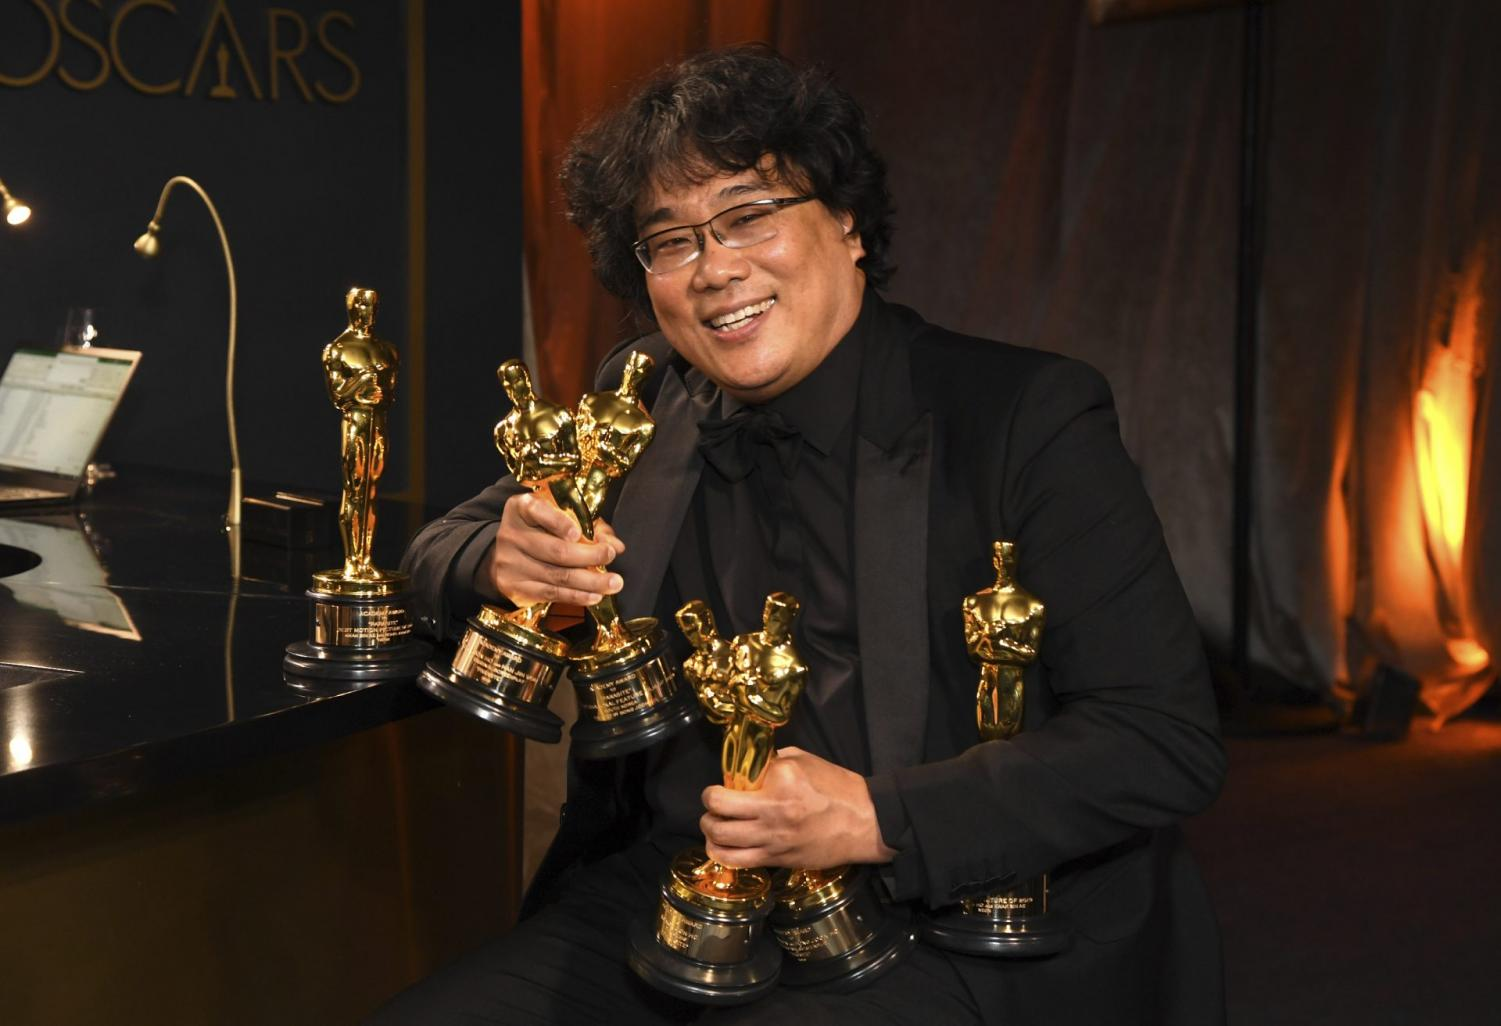 Bong Joon-ho holds the Oscars for best original screenplay, best international feature film, best directing, and best picture for